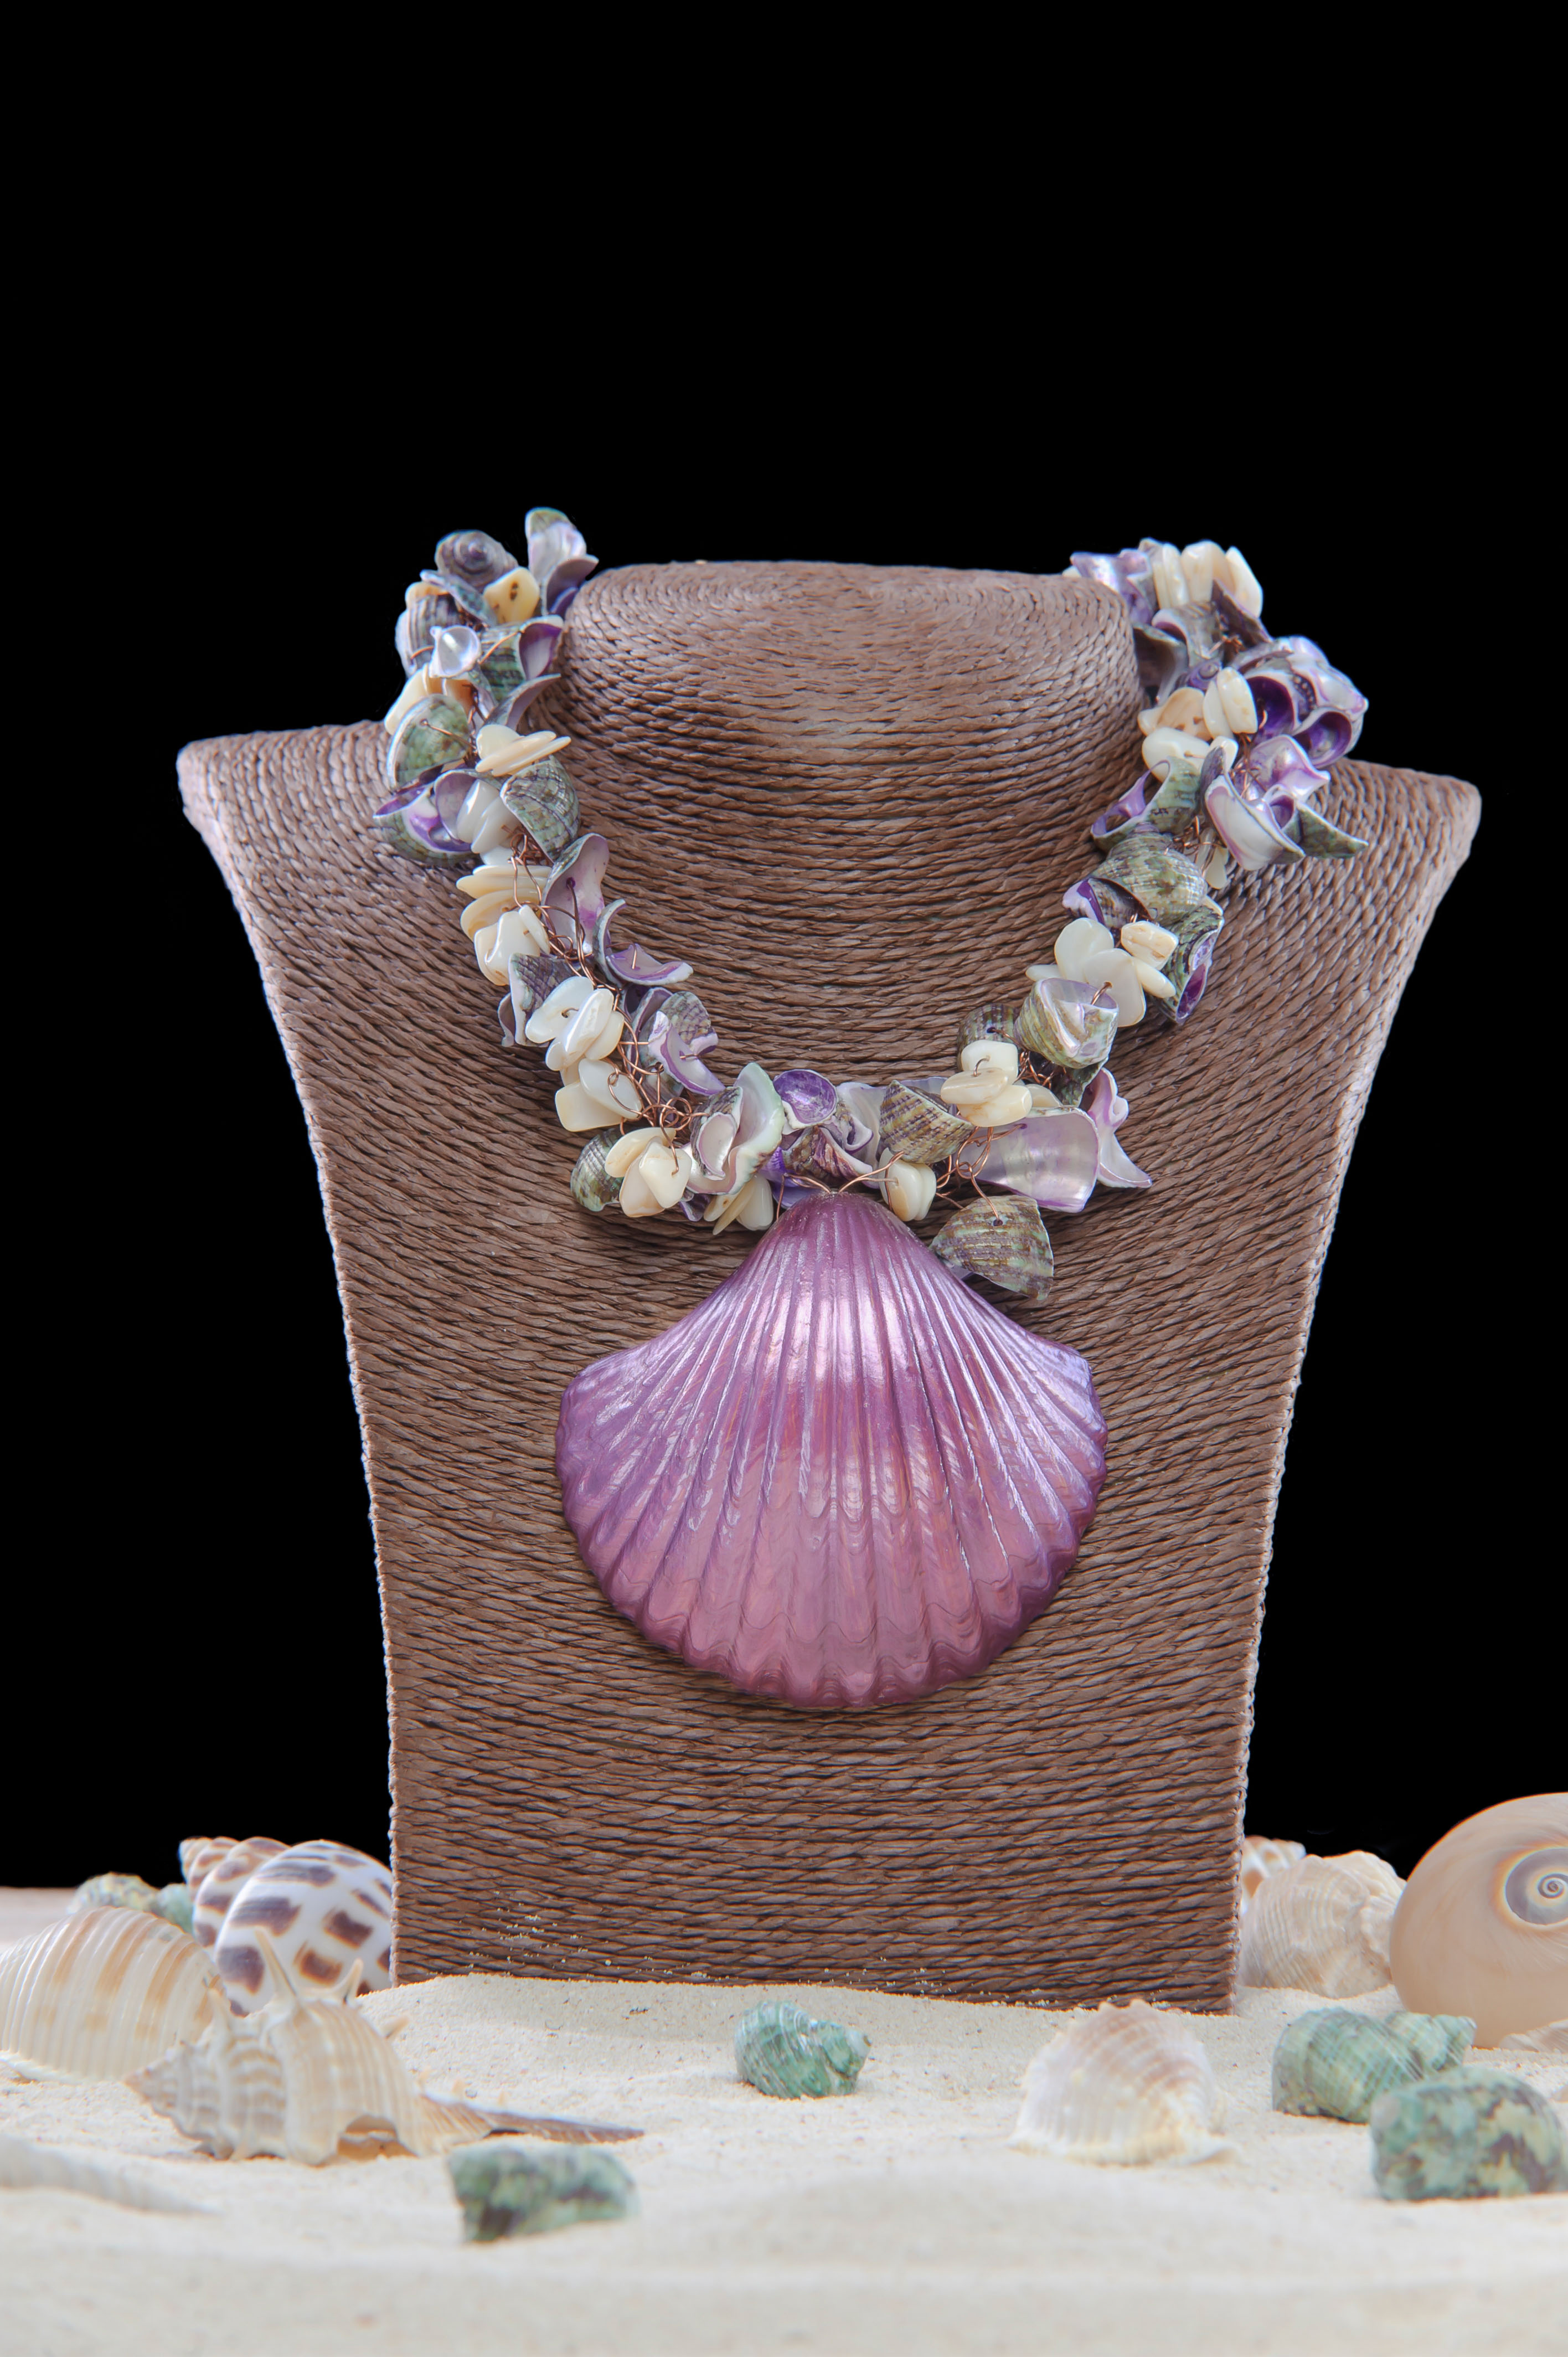 Product photography, jewelry images